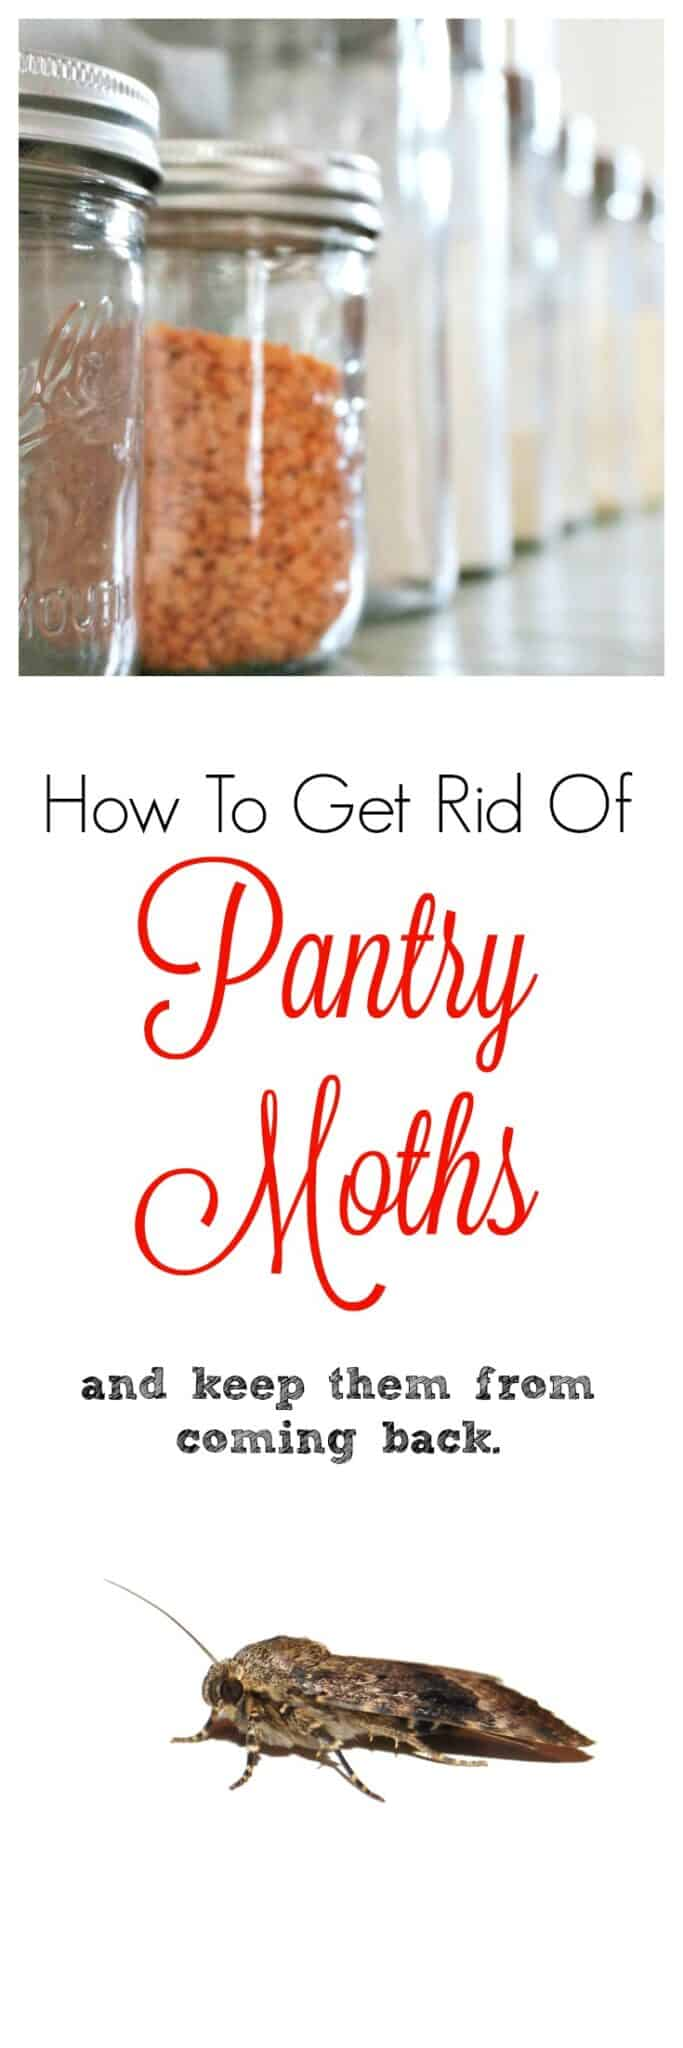 How To Get Rid Of Pantry Moths & Keep Them From Returning